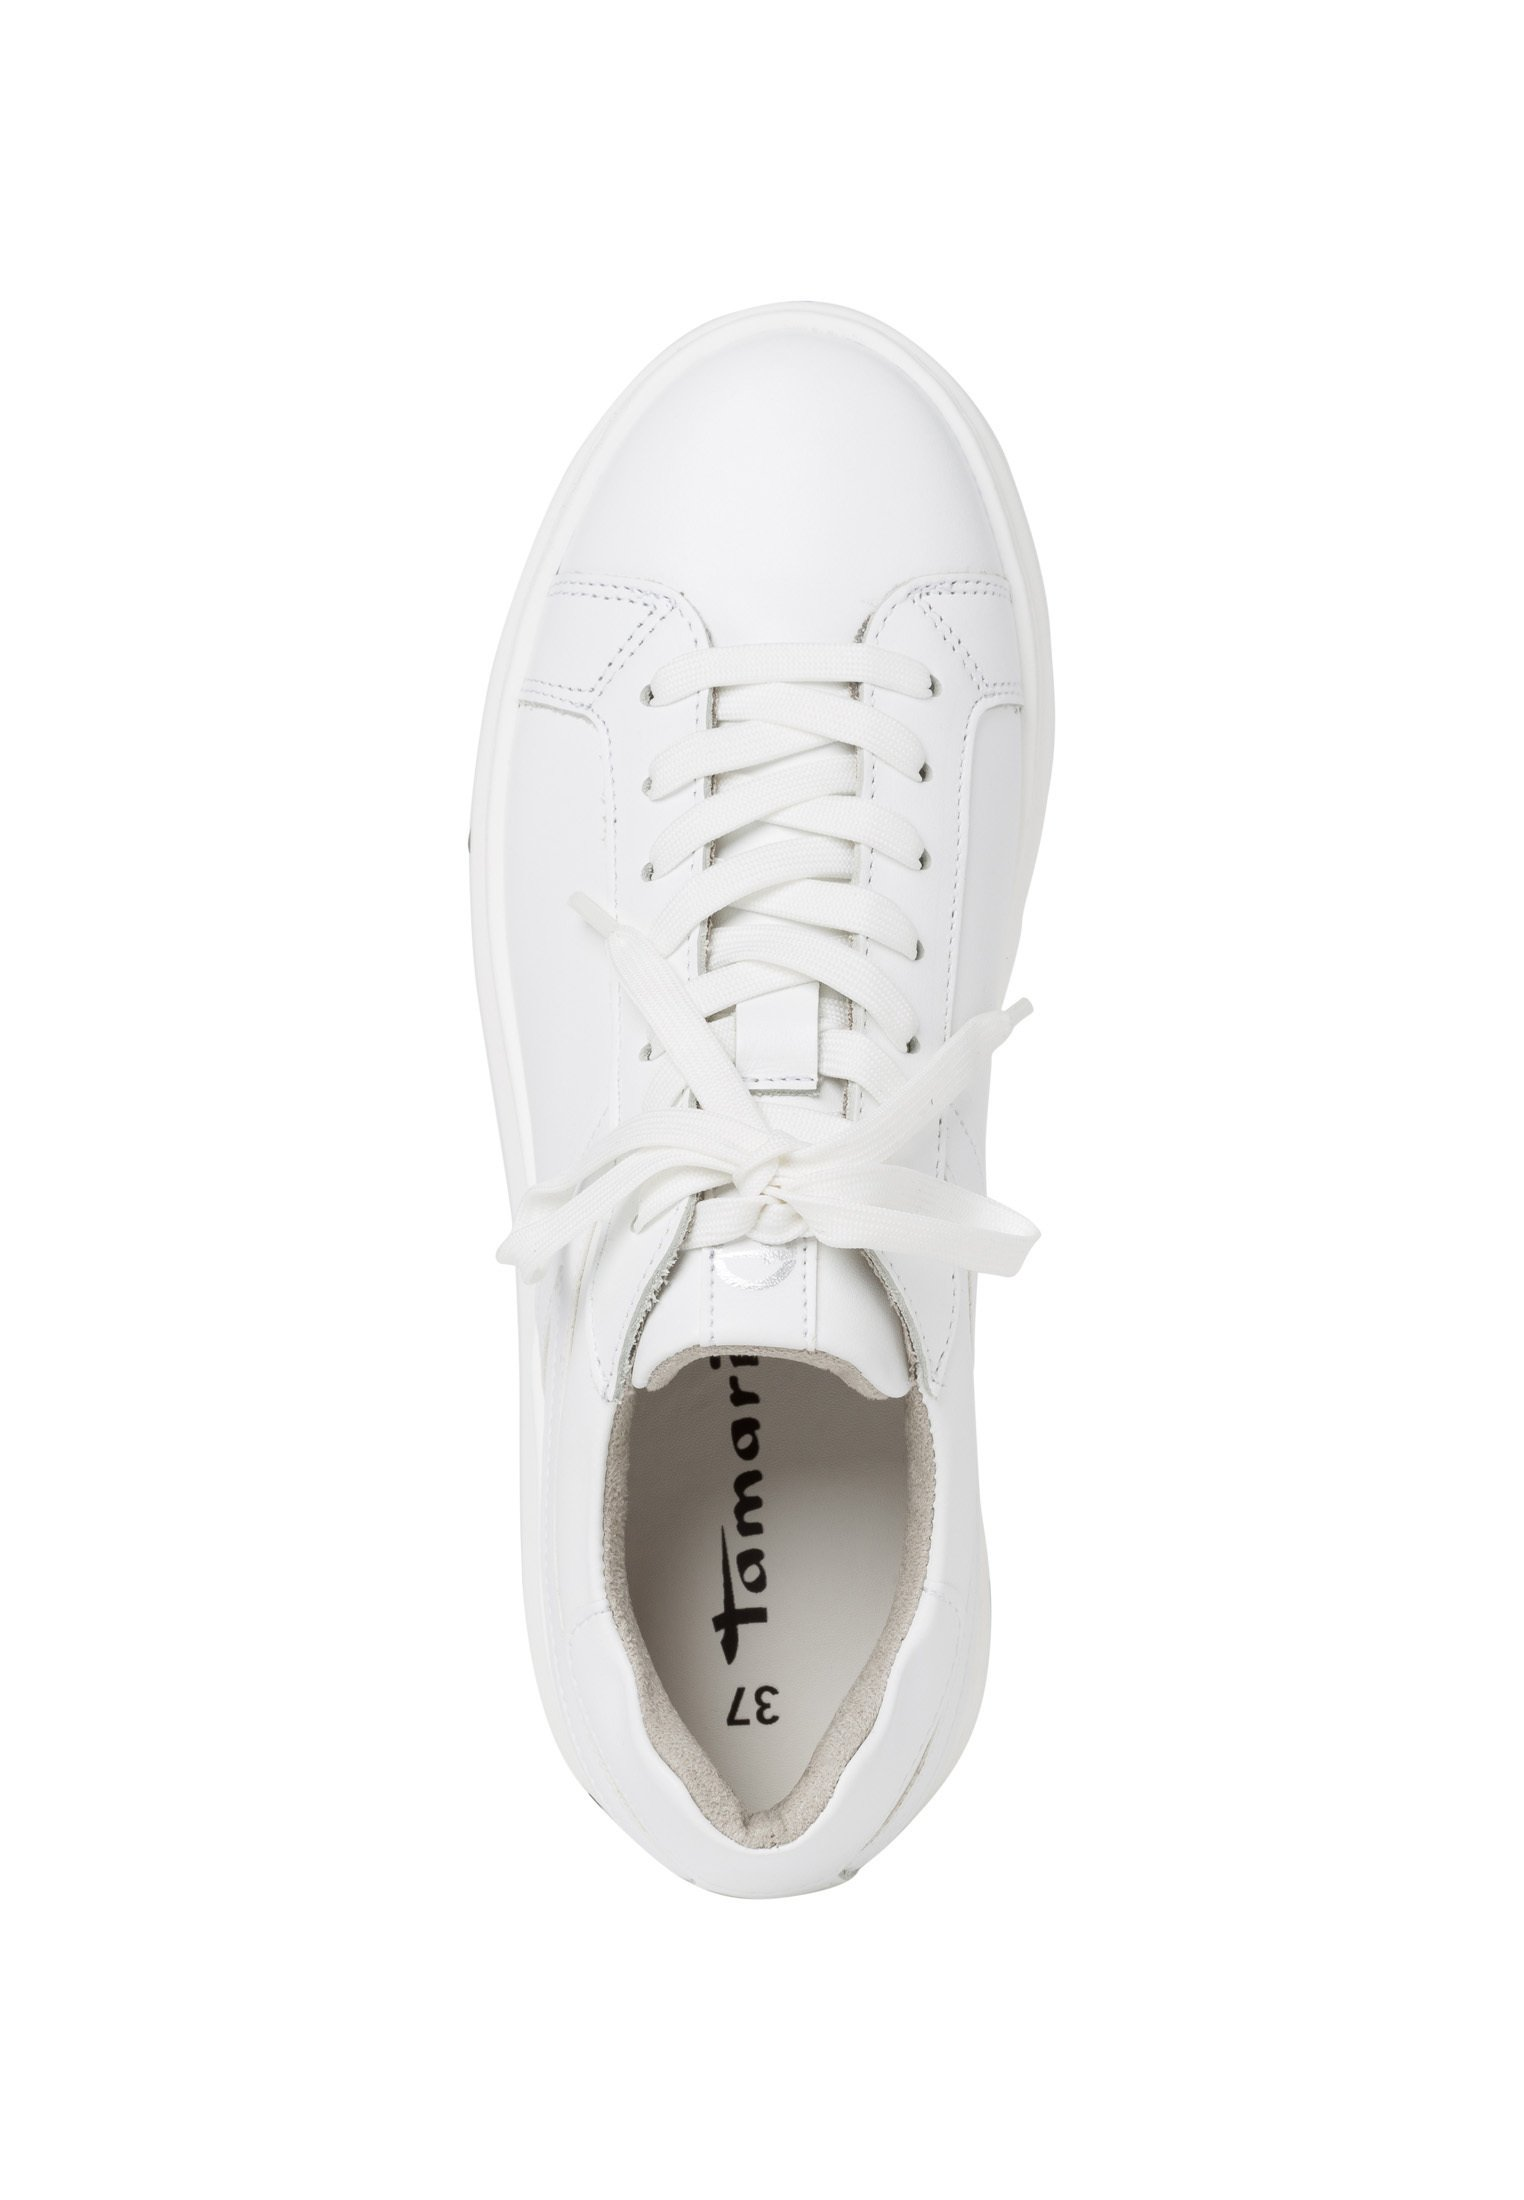 Tamaris Sneaker low white uni/weiß